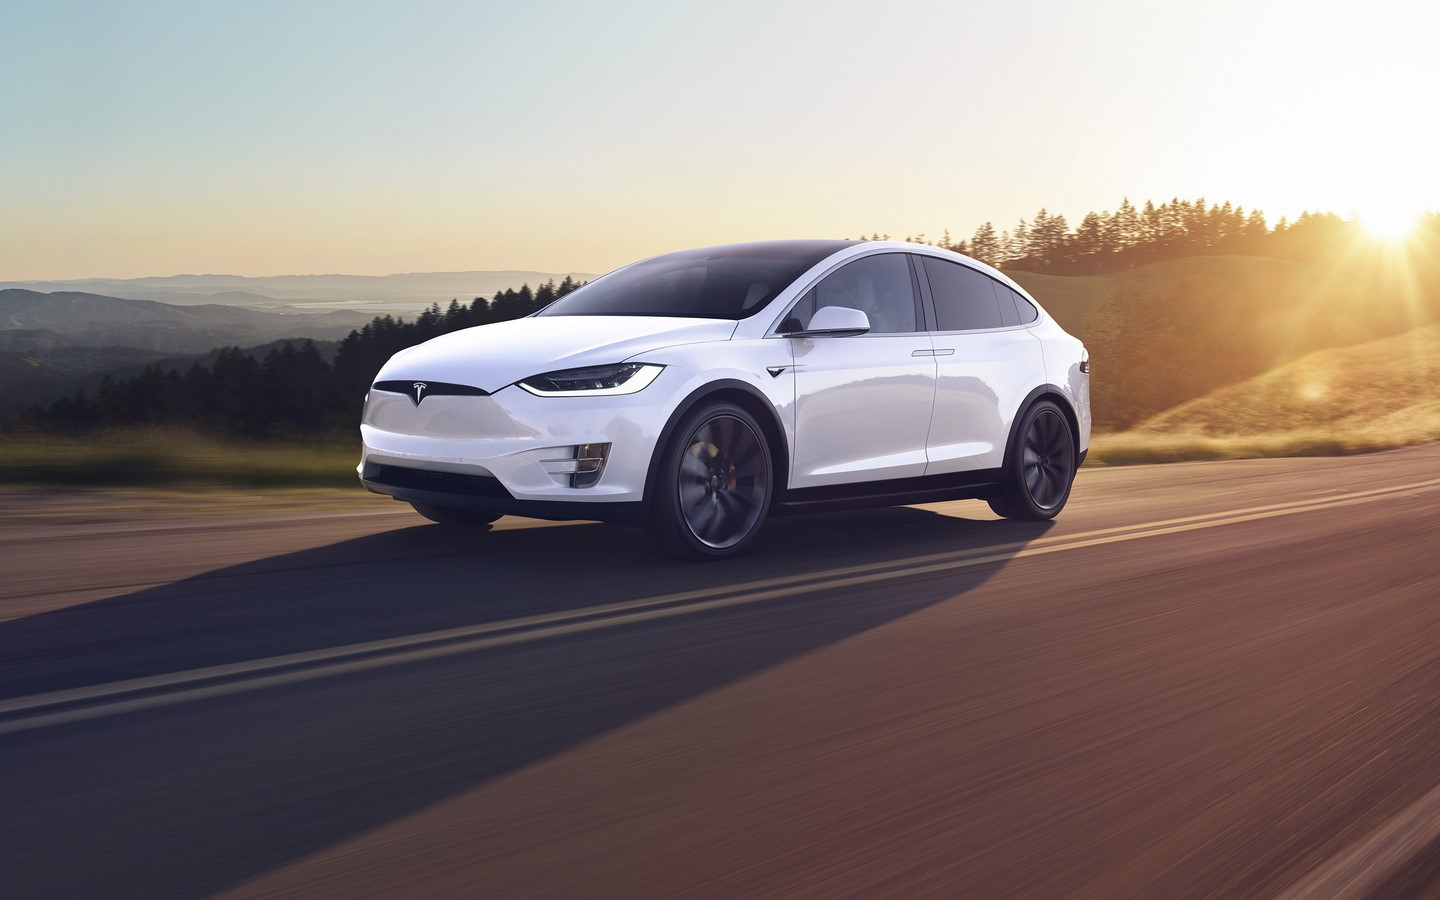 10 Things you did not know about Tesla - Sheet4